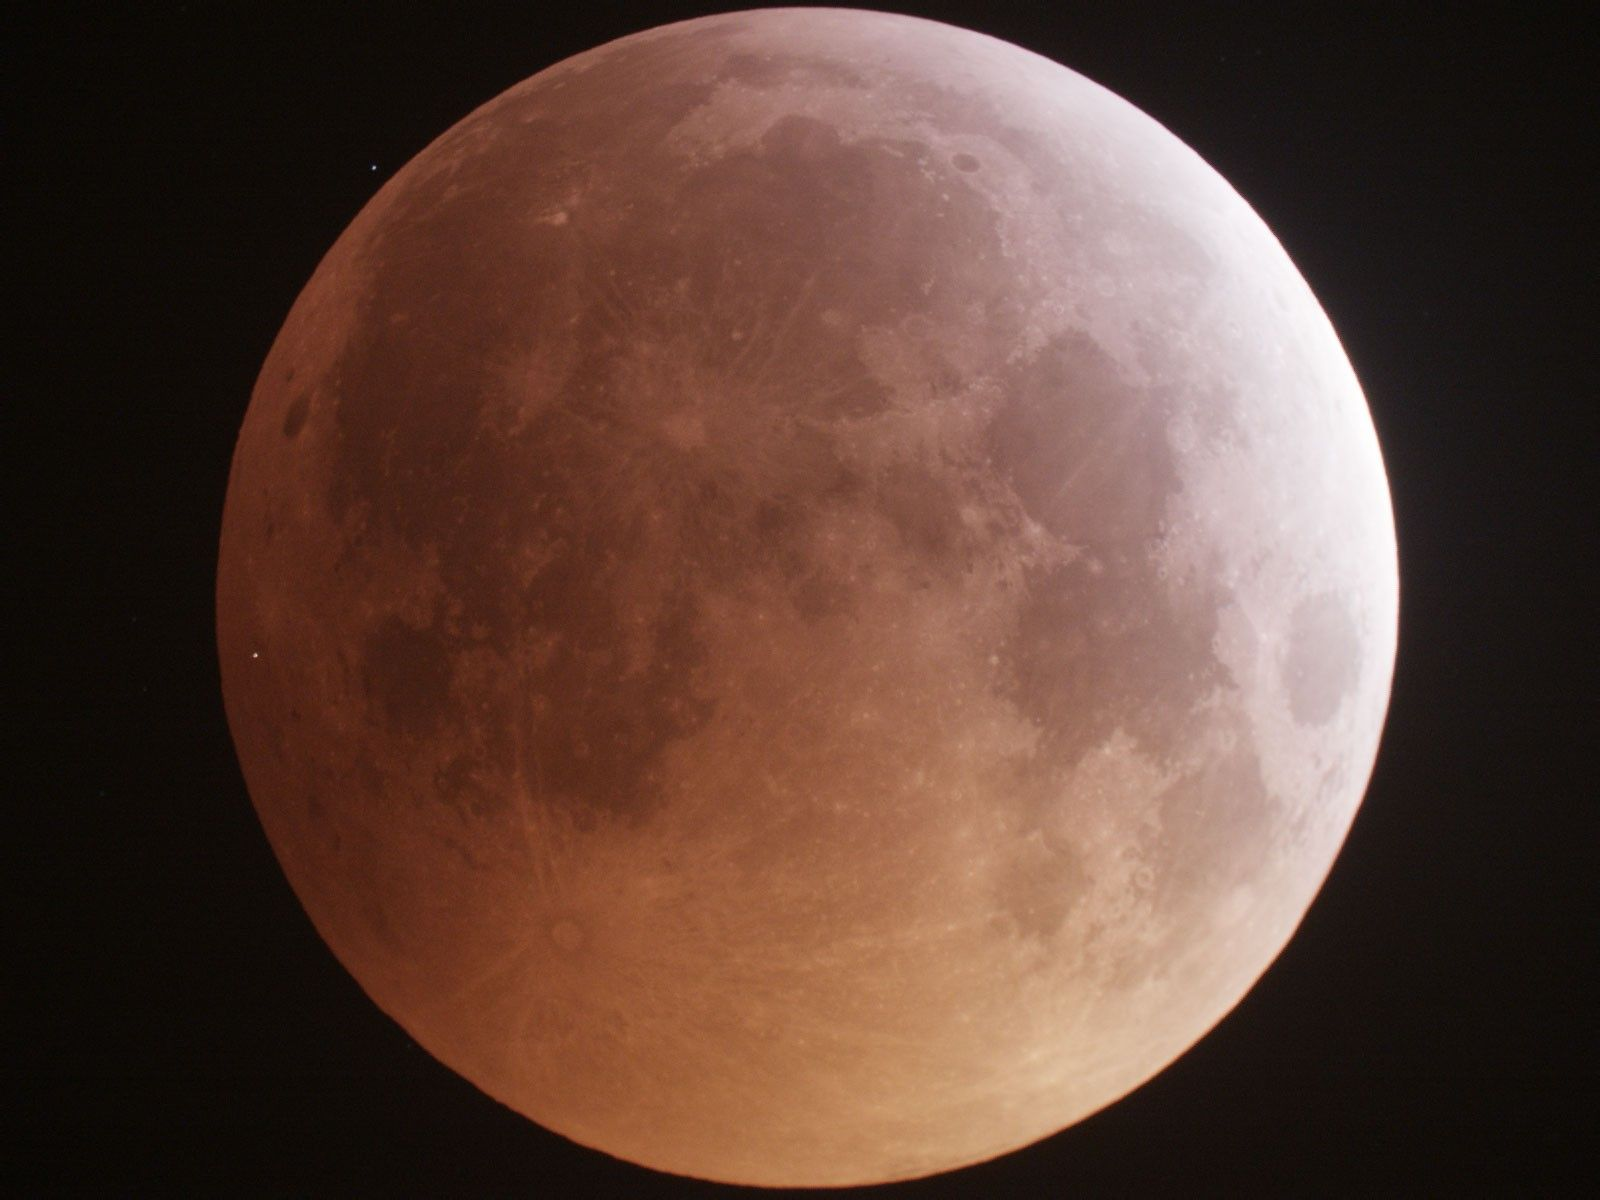 A meteor hit the moon during the lunar eclipse. Here's what we know.